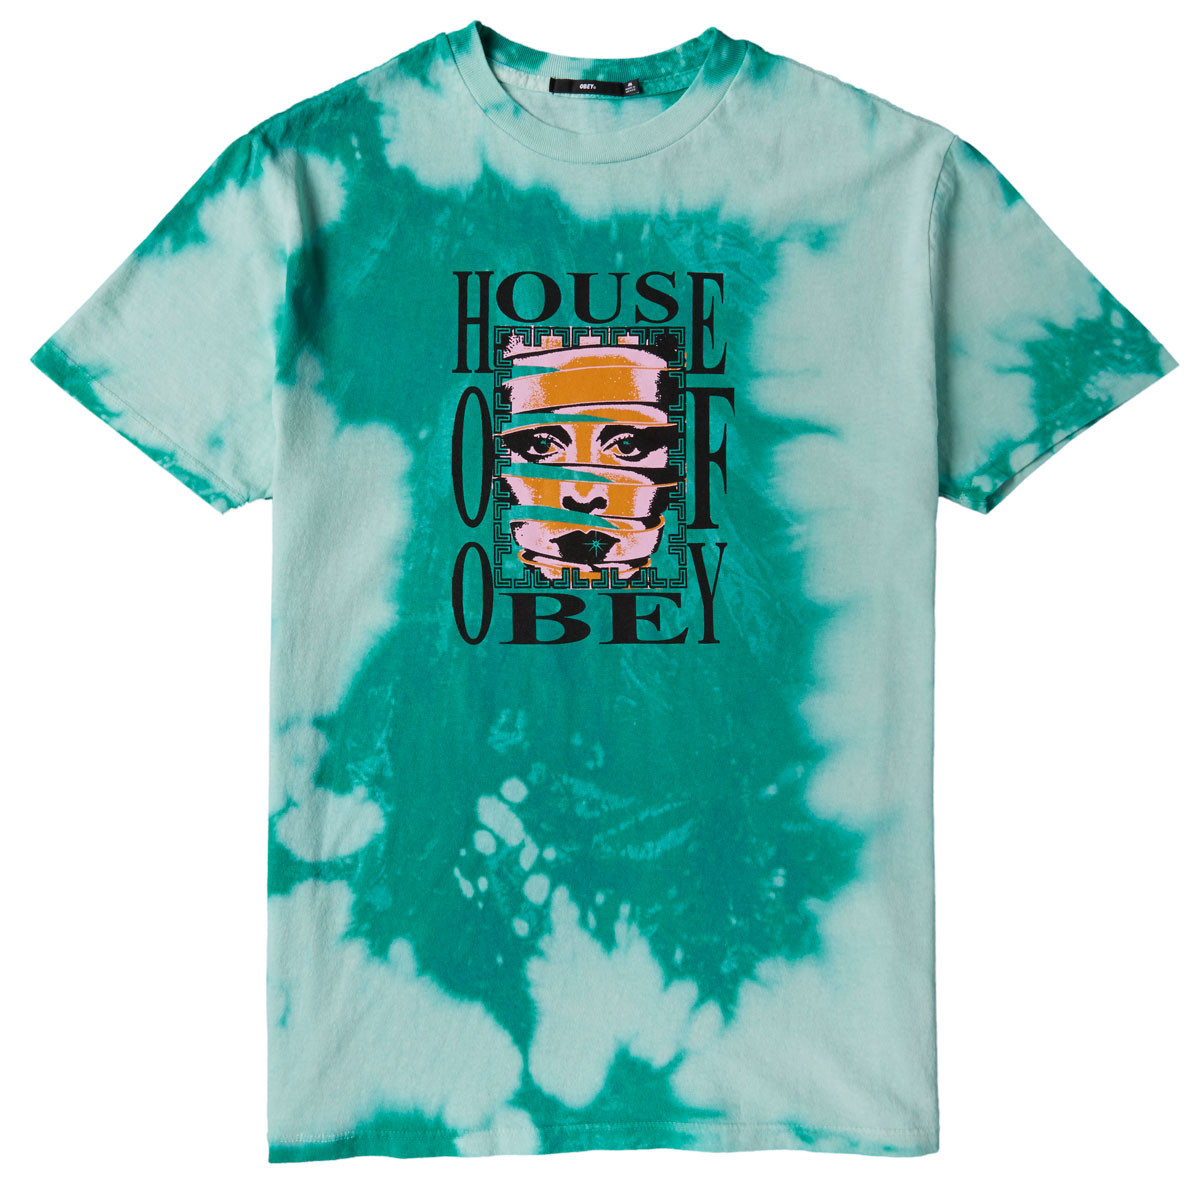 release date hot-selling cheap sale uk Obey House Of Obey T-Shirt - Teal